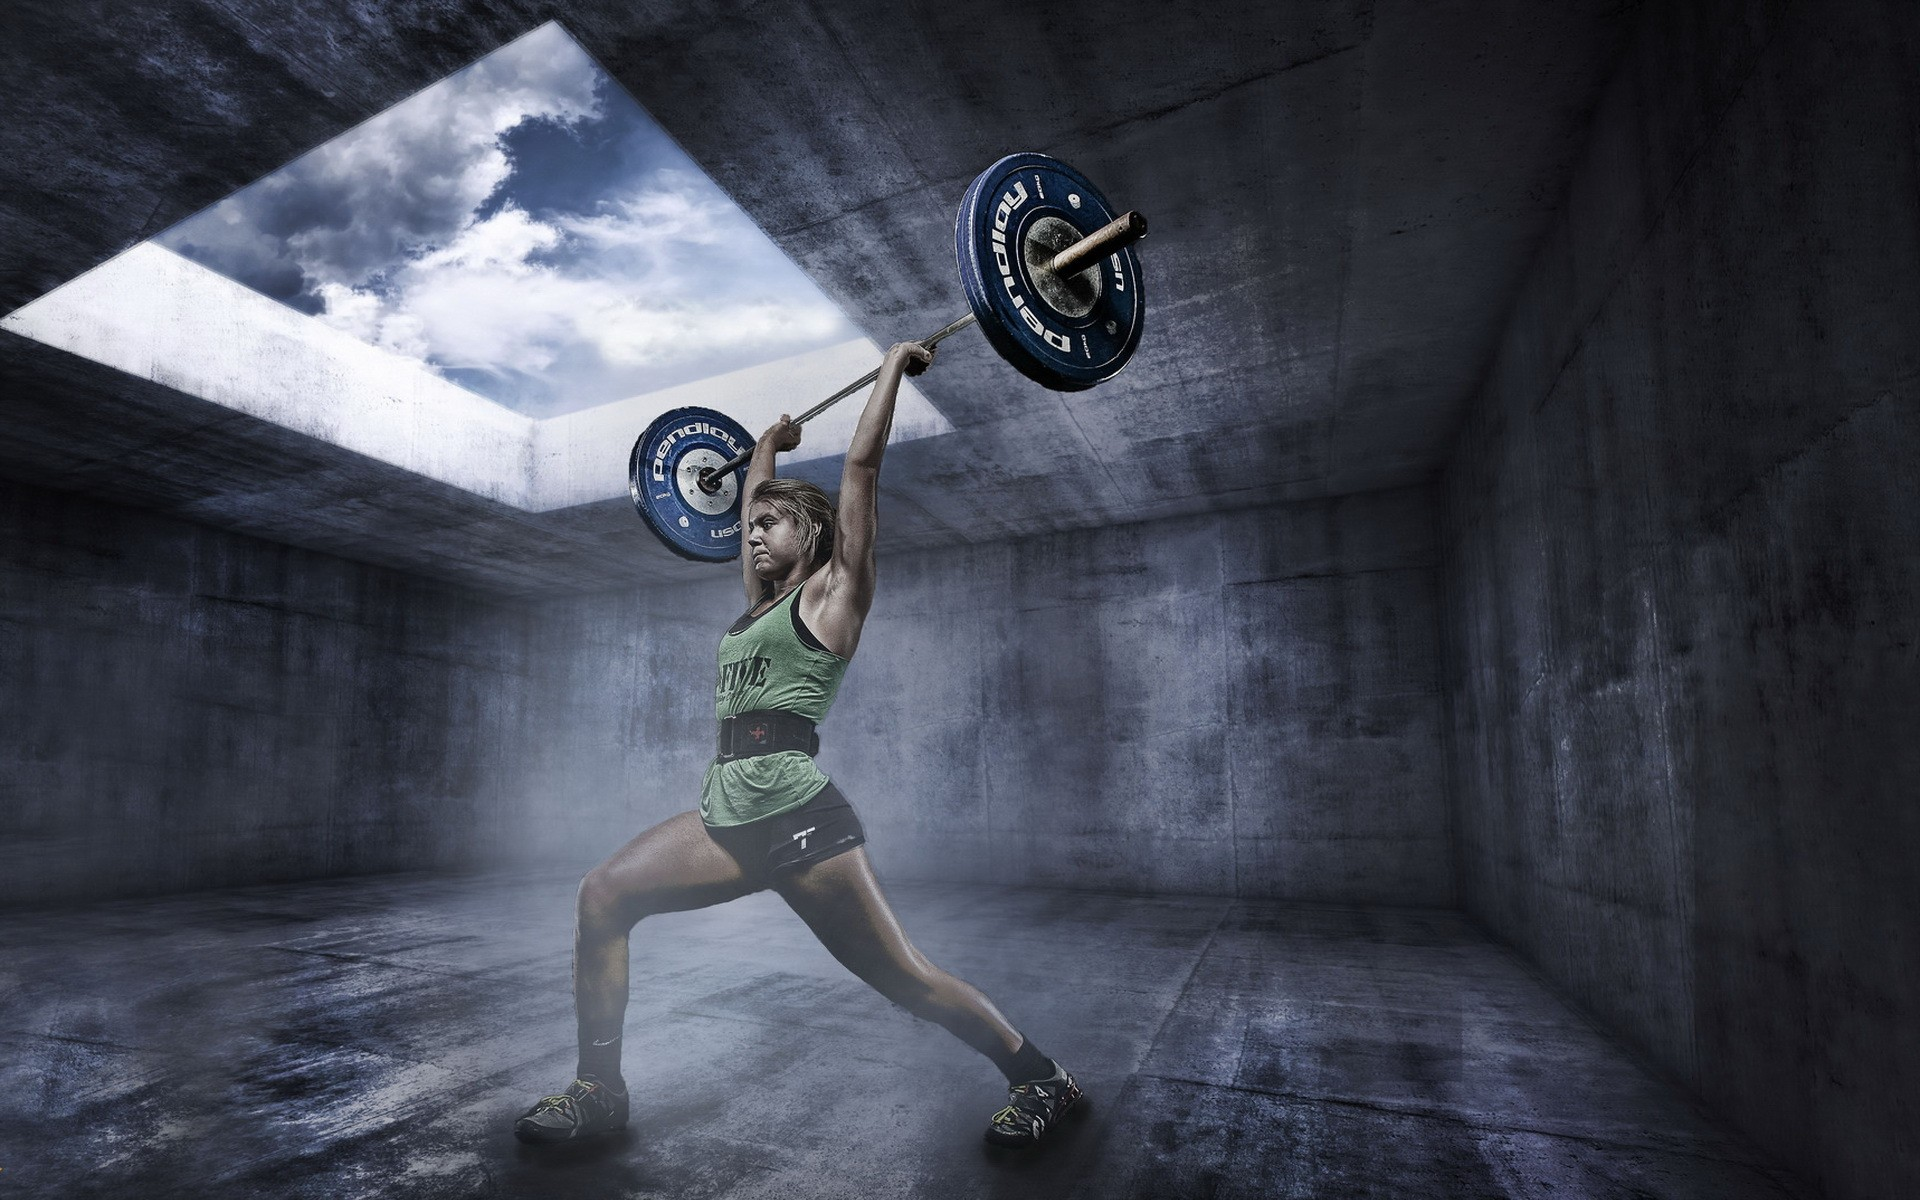 Crossfit Wallpaper Girls Weightlifting Wallpapers Pictures Images